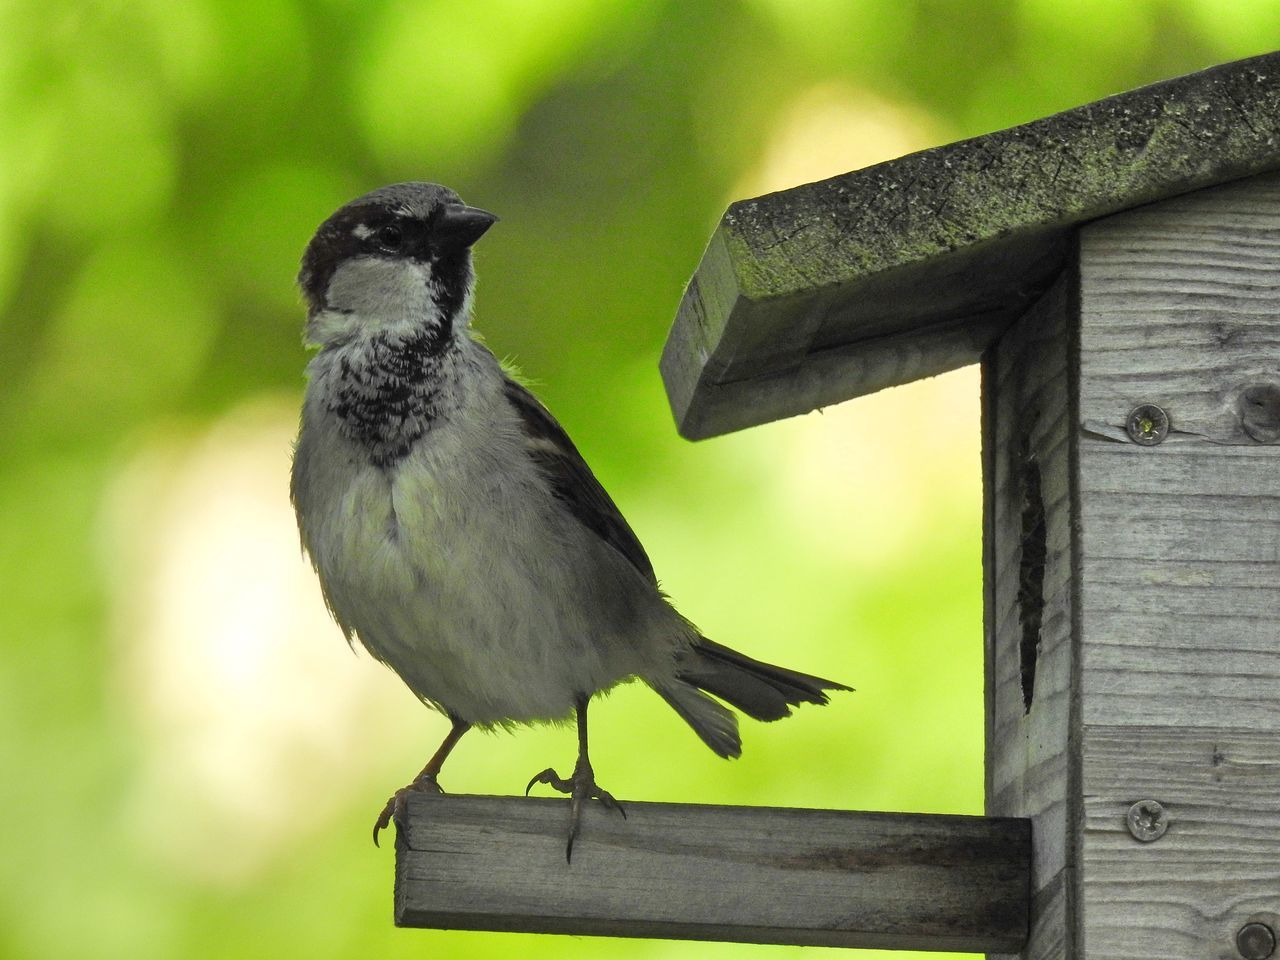 Alertness Animal Themes Animal Wildlife Animals In The Wild Bird Bird Photography Birds_collection Close-up Day Focus On Foreground Nature Nature Photography Nature_collection Naturelovers Nesting Place No People One Animal Outdoors Perching Sparrow Wood - Material